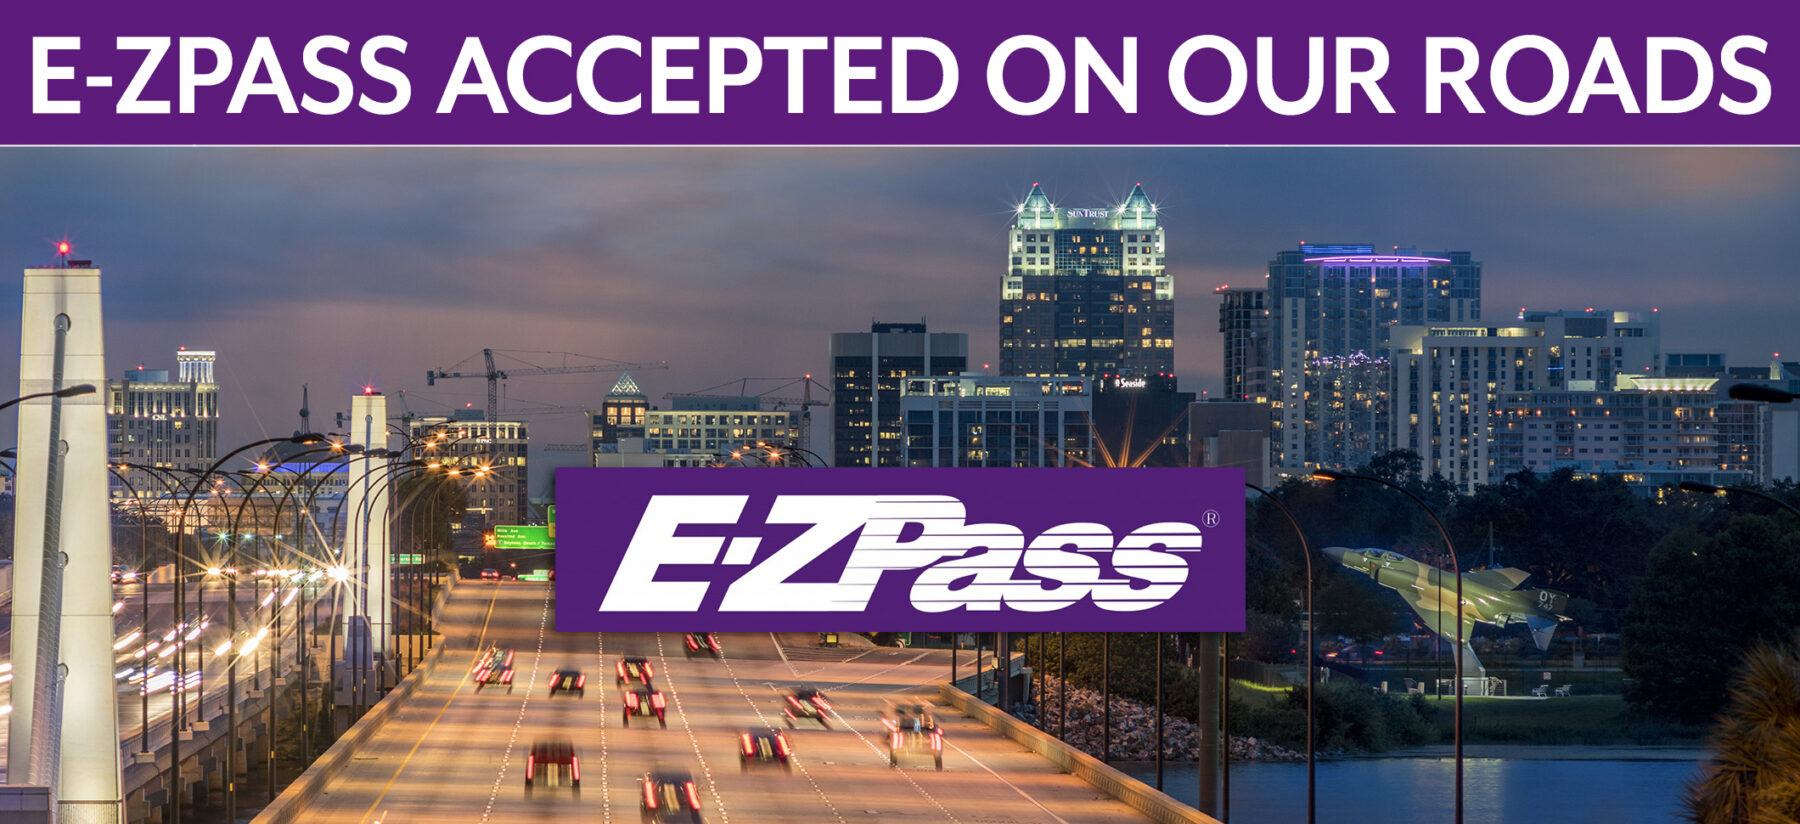 E-Z Pass accepted on our roads - Central Florida Expressway Authority